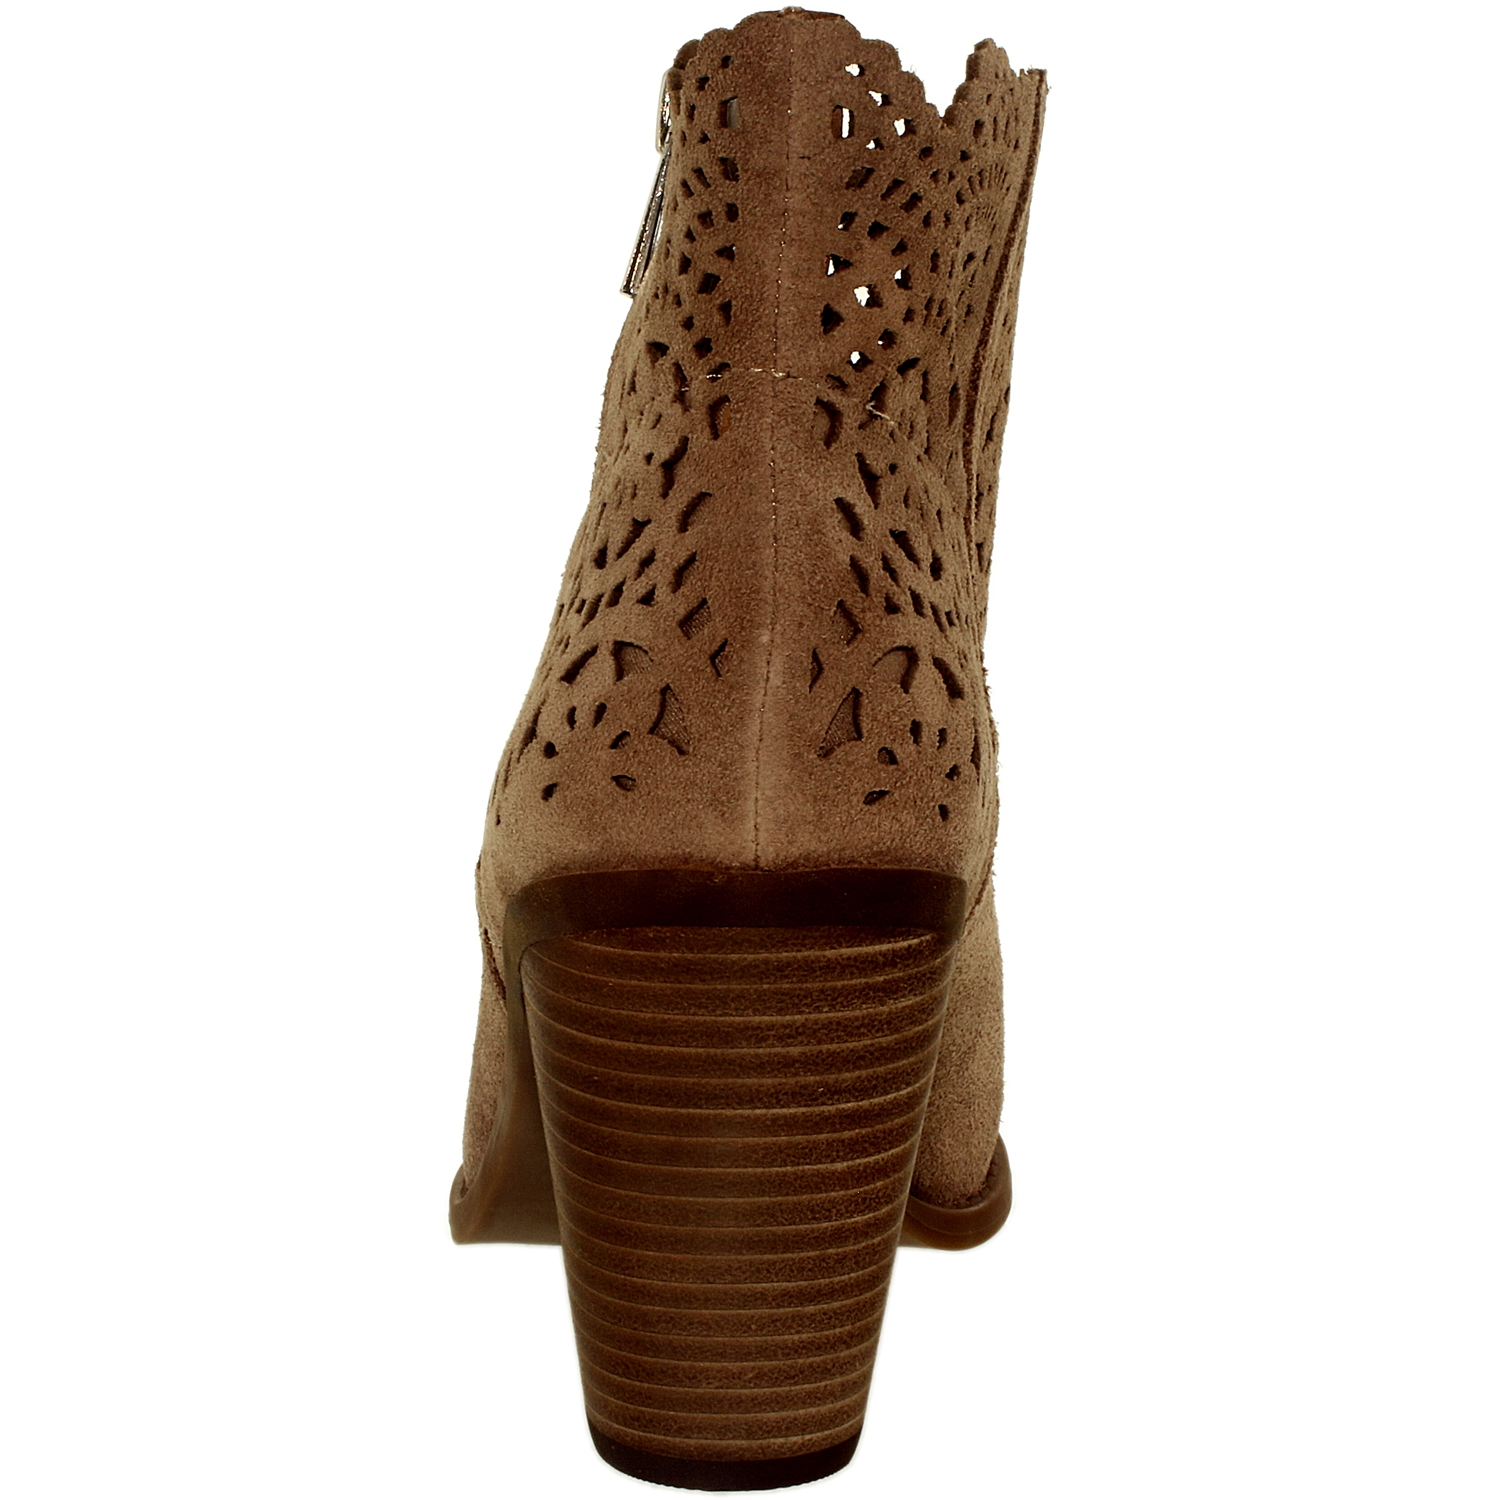 Jessica Simpson Women's Cachelle Suede Warm Taupe Ankle-High Leather Boot - 9.5M - image 2 of 3